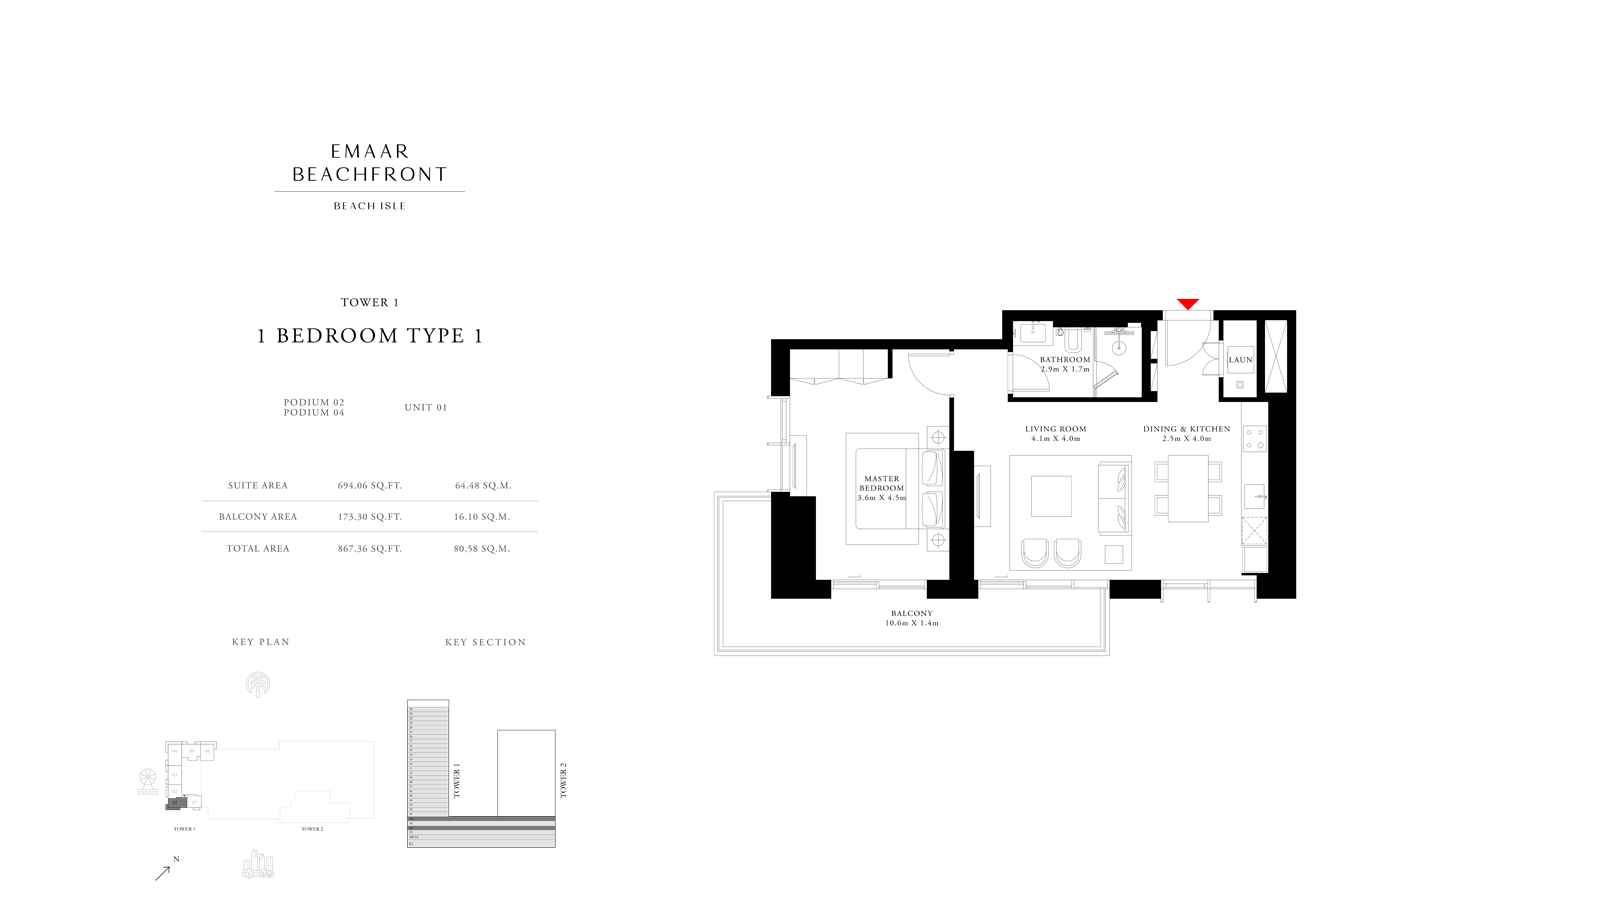 1 Bedroom Type 1 Tower 1, Size 867    sq. ft.